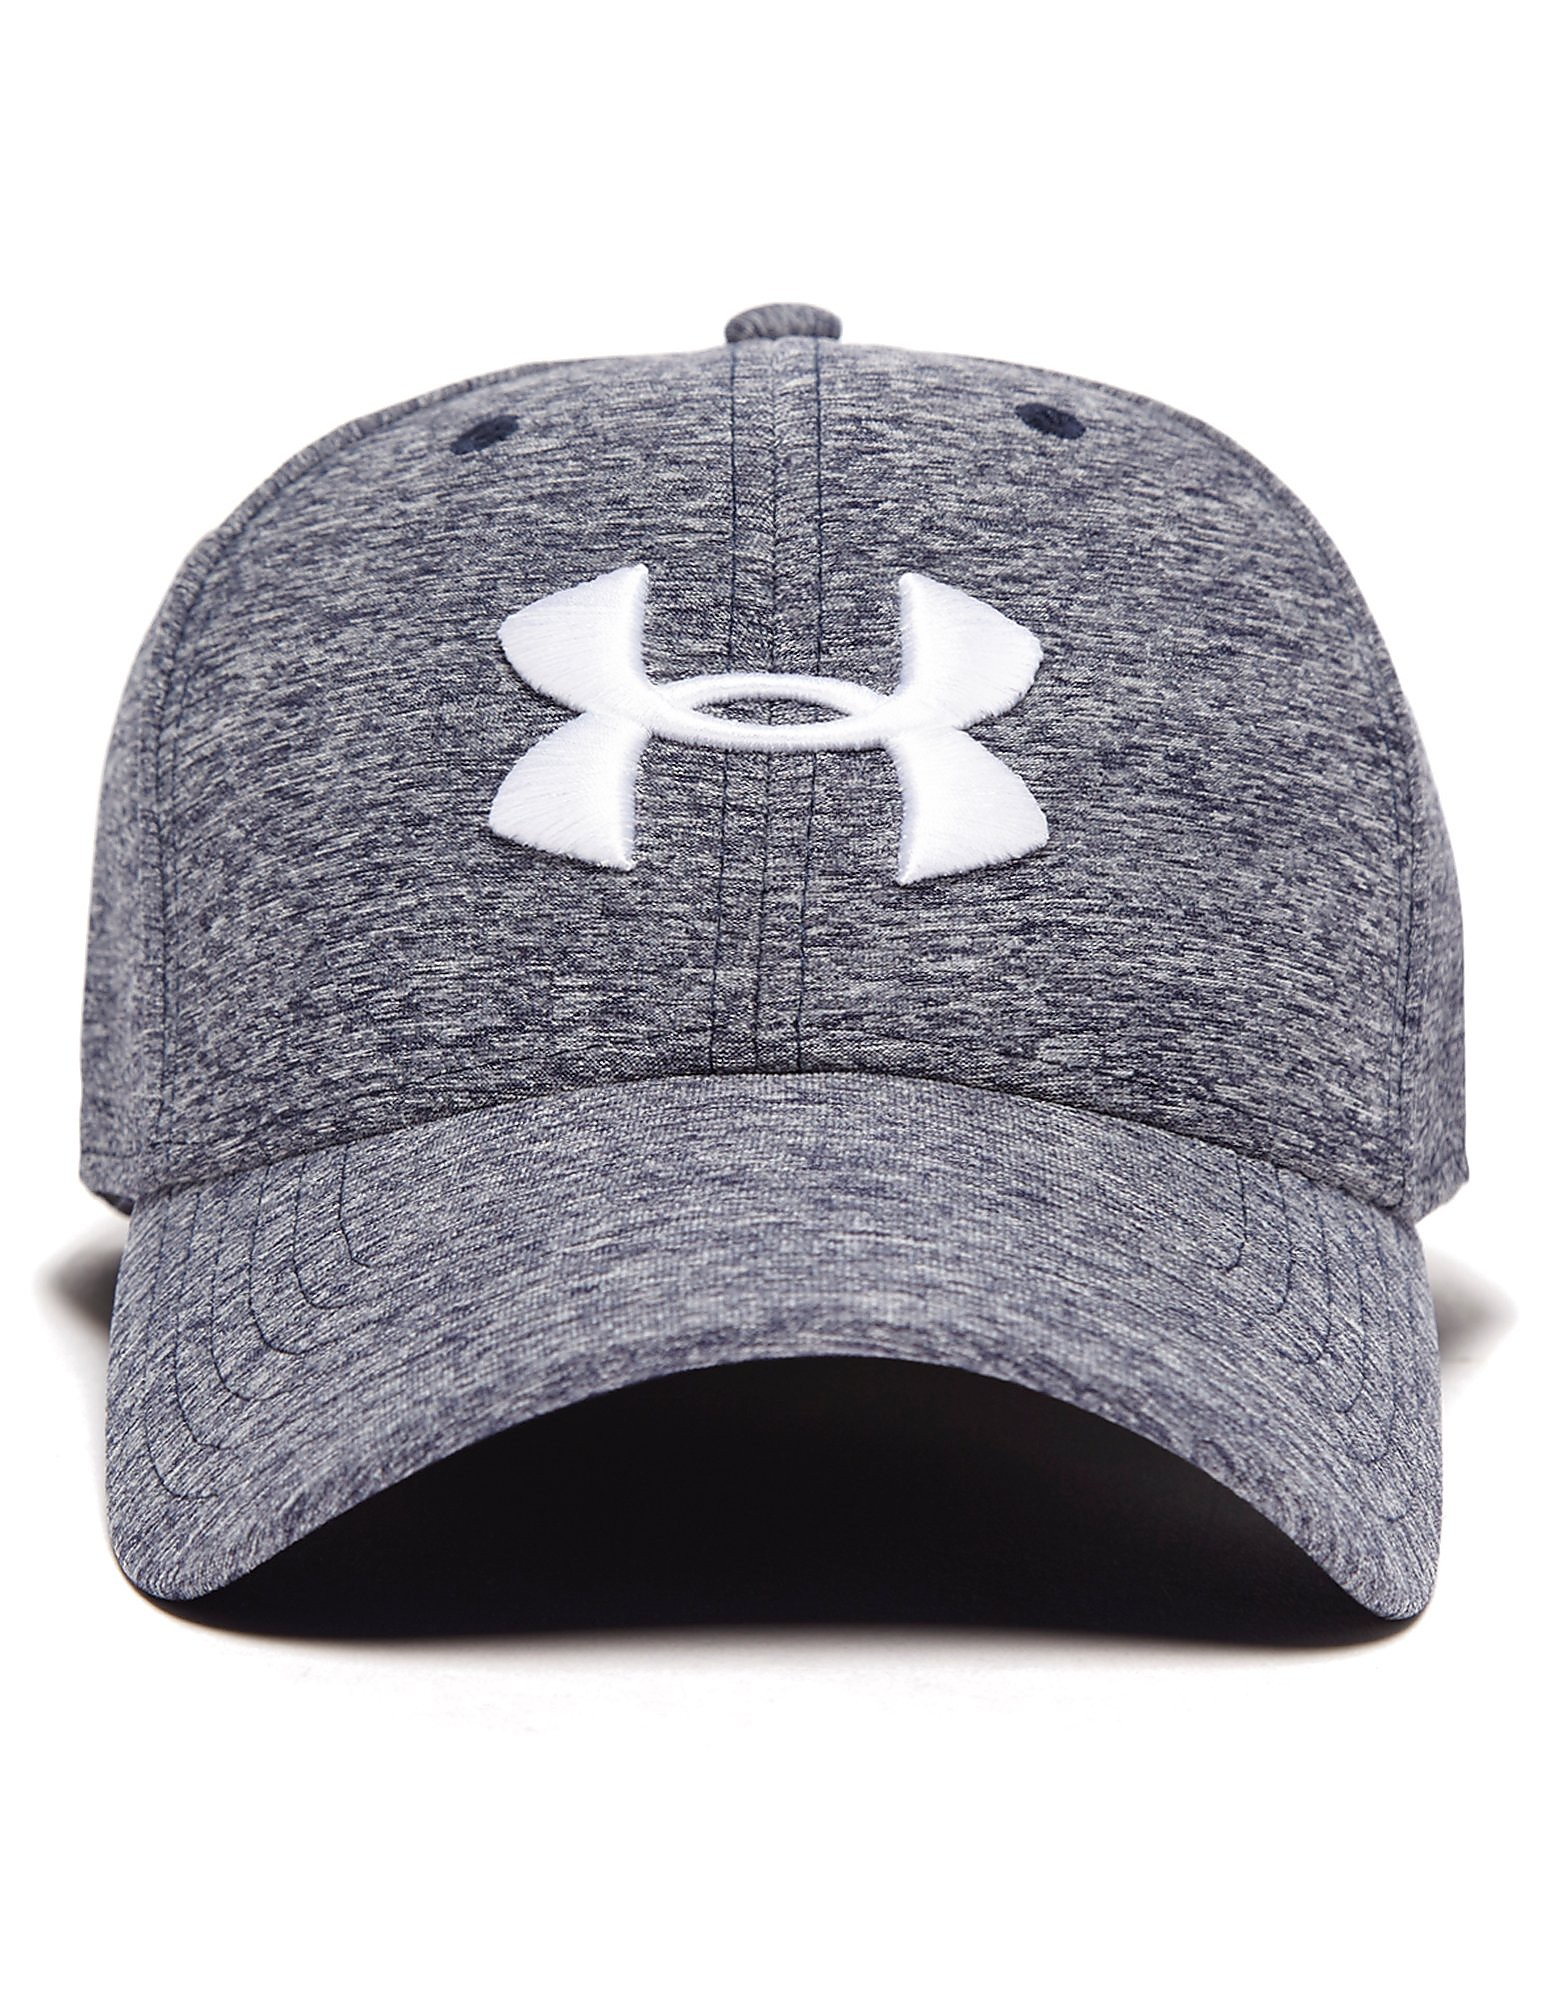 Under Armour Twist Tech Closer Cap